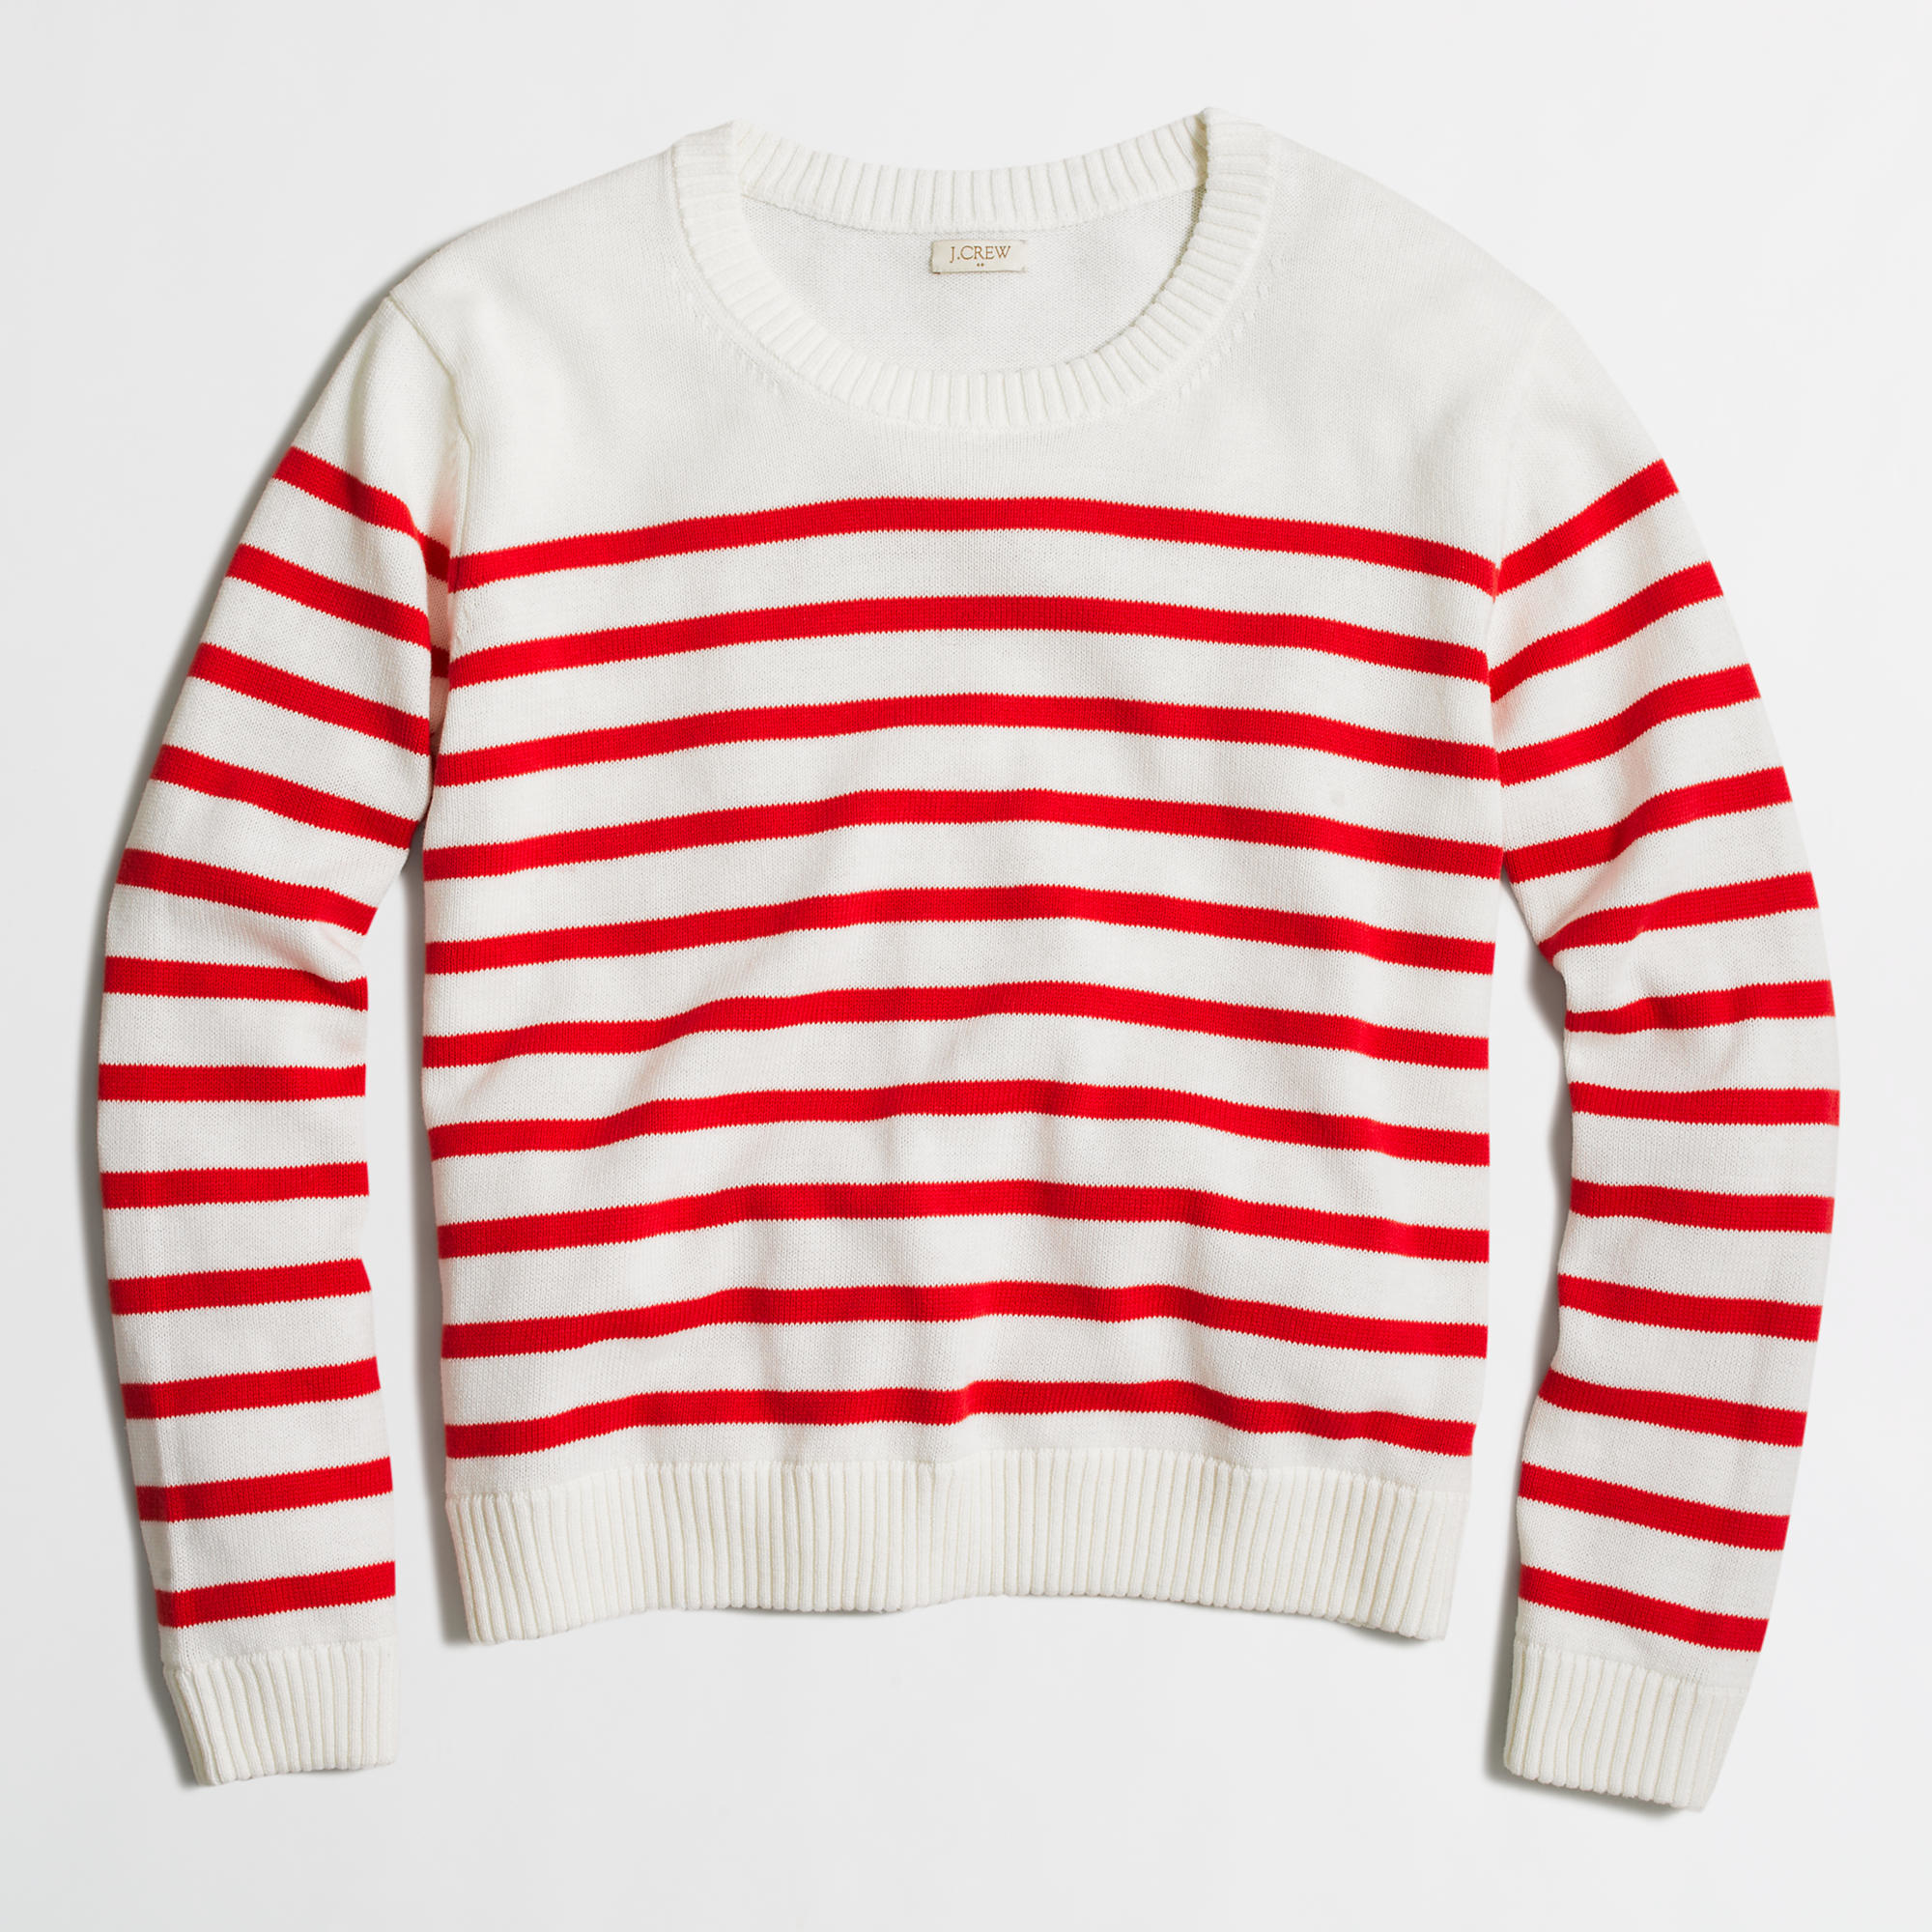 J.crew Factory Cropped Cotton Sweater In Stripe in Red | Lyst